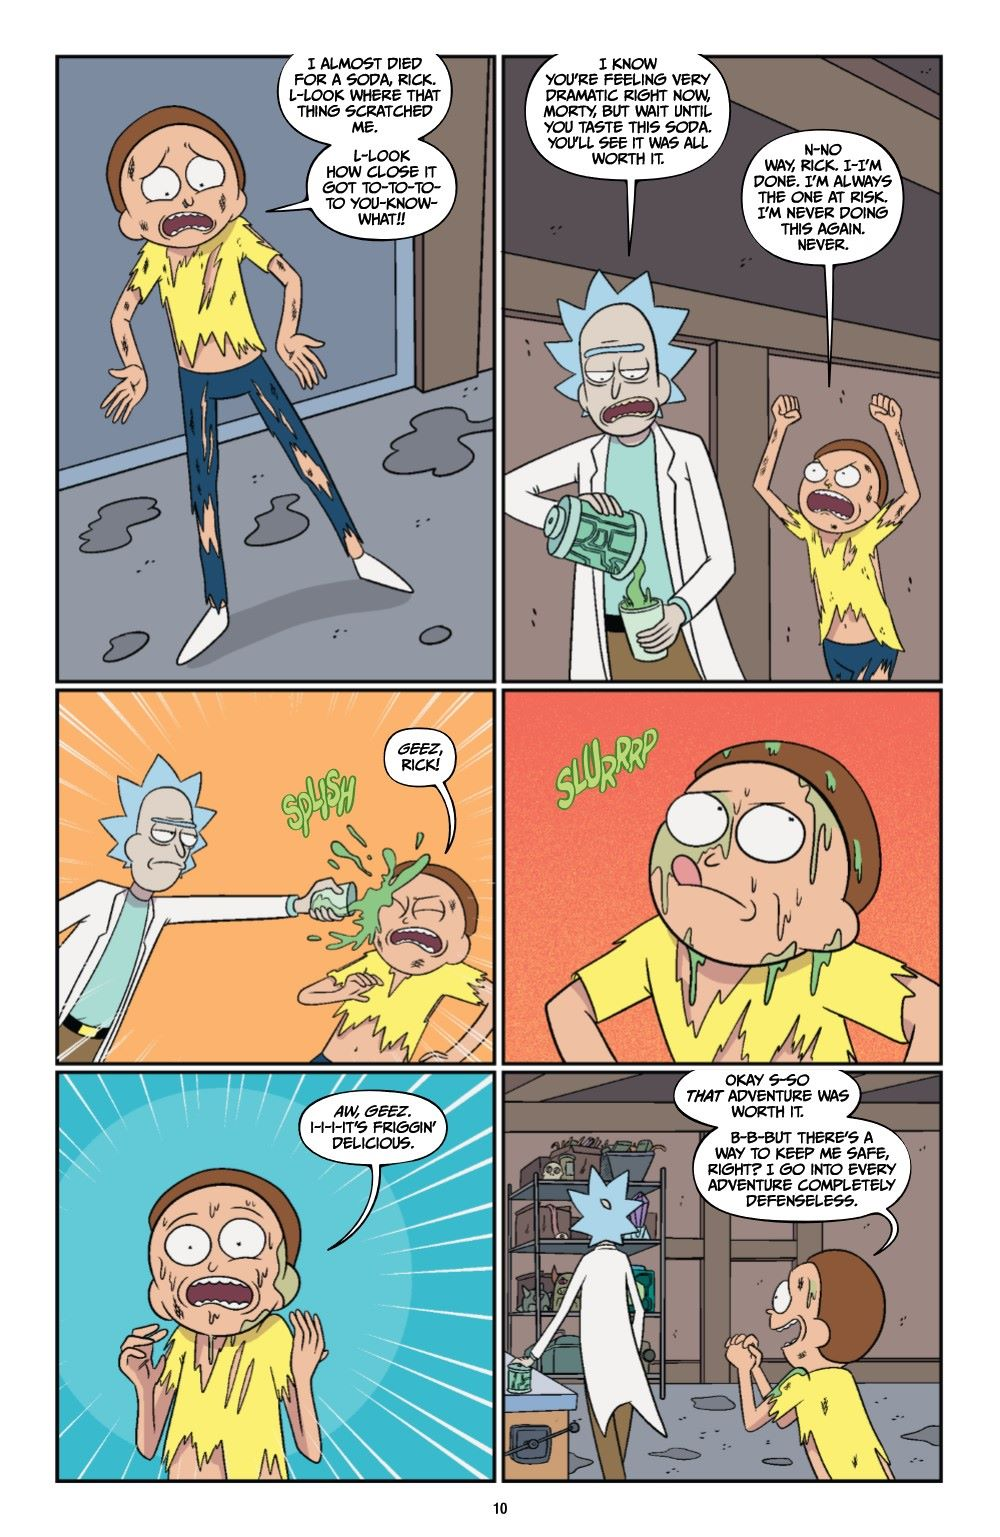 RICKMORTY-V12-TPB-REFERENCE-011 ComicList Previews: RICK AND MORTY VOLUME 12 TP